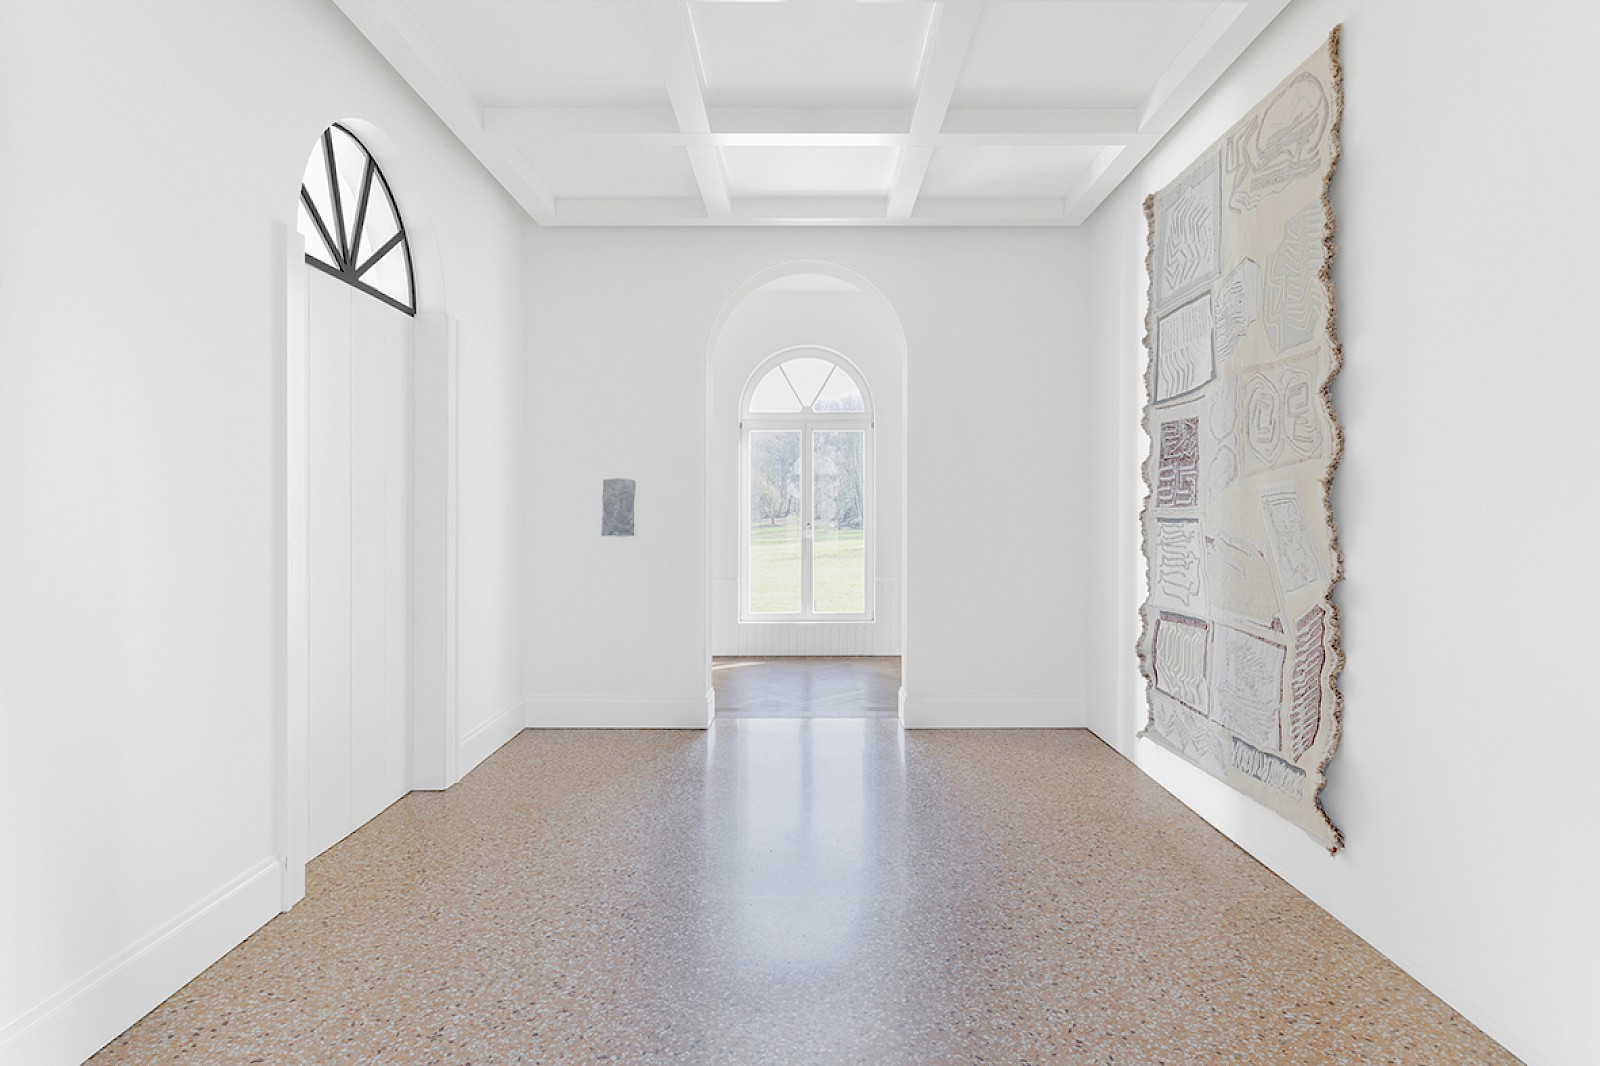 Image - CARE at the whitehousegallery.be